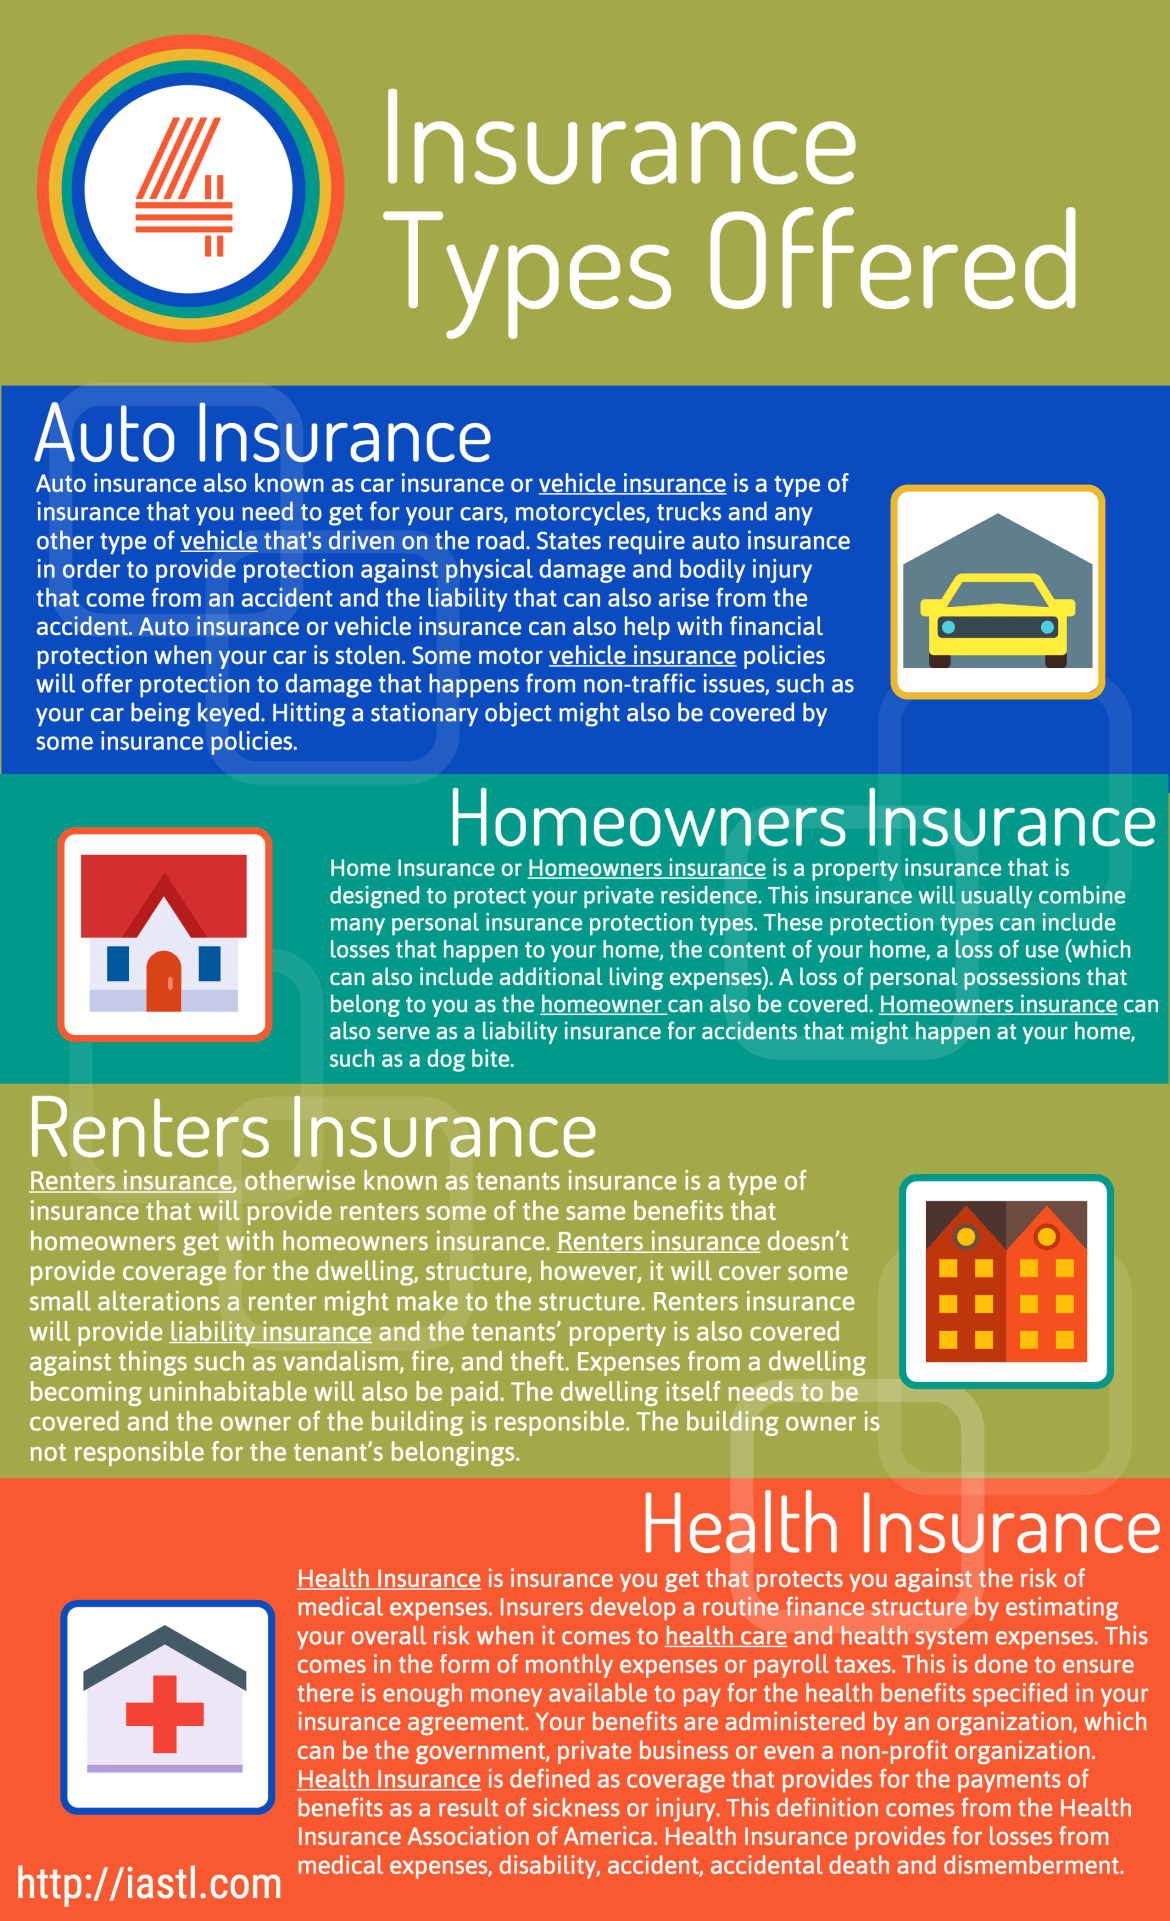 Insurance Types Offered by Insurance Advisors of St. Louis include Auto Insurance, Homeowners Insurance, Renters Insurance and Health Insurance